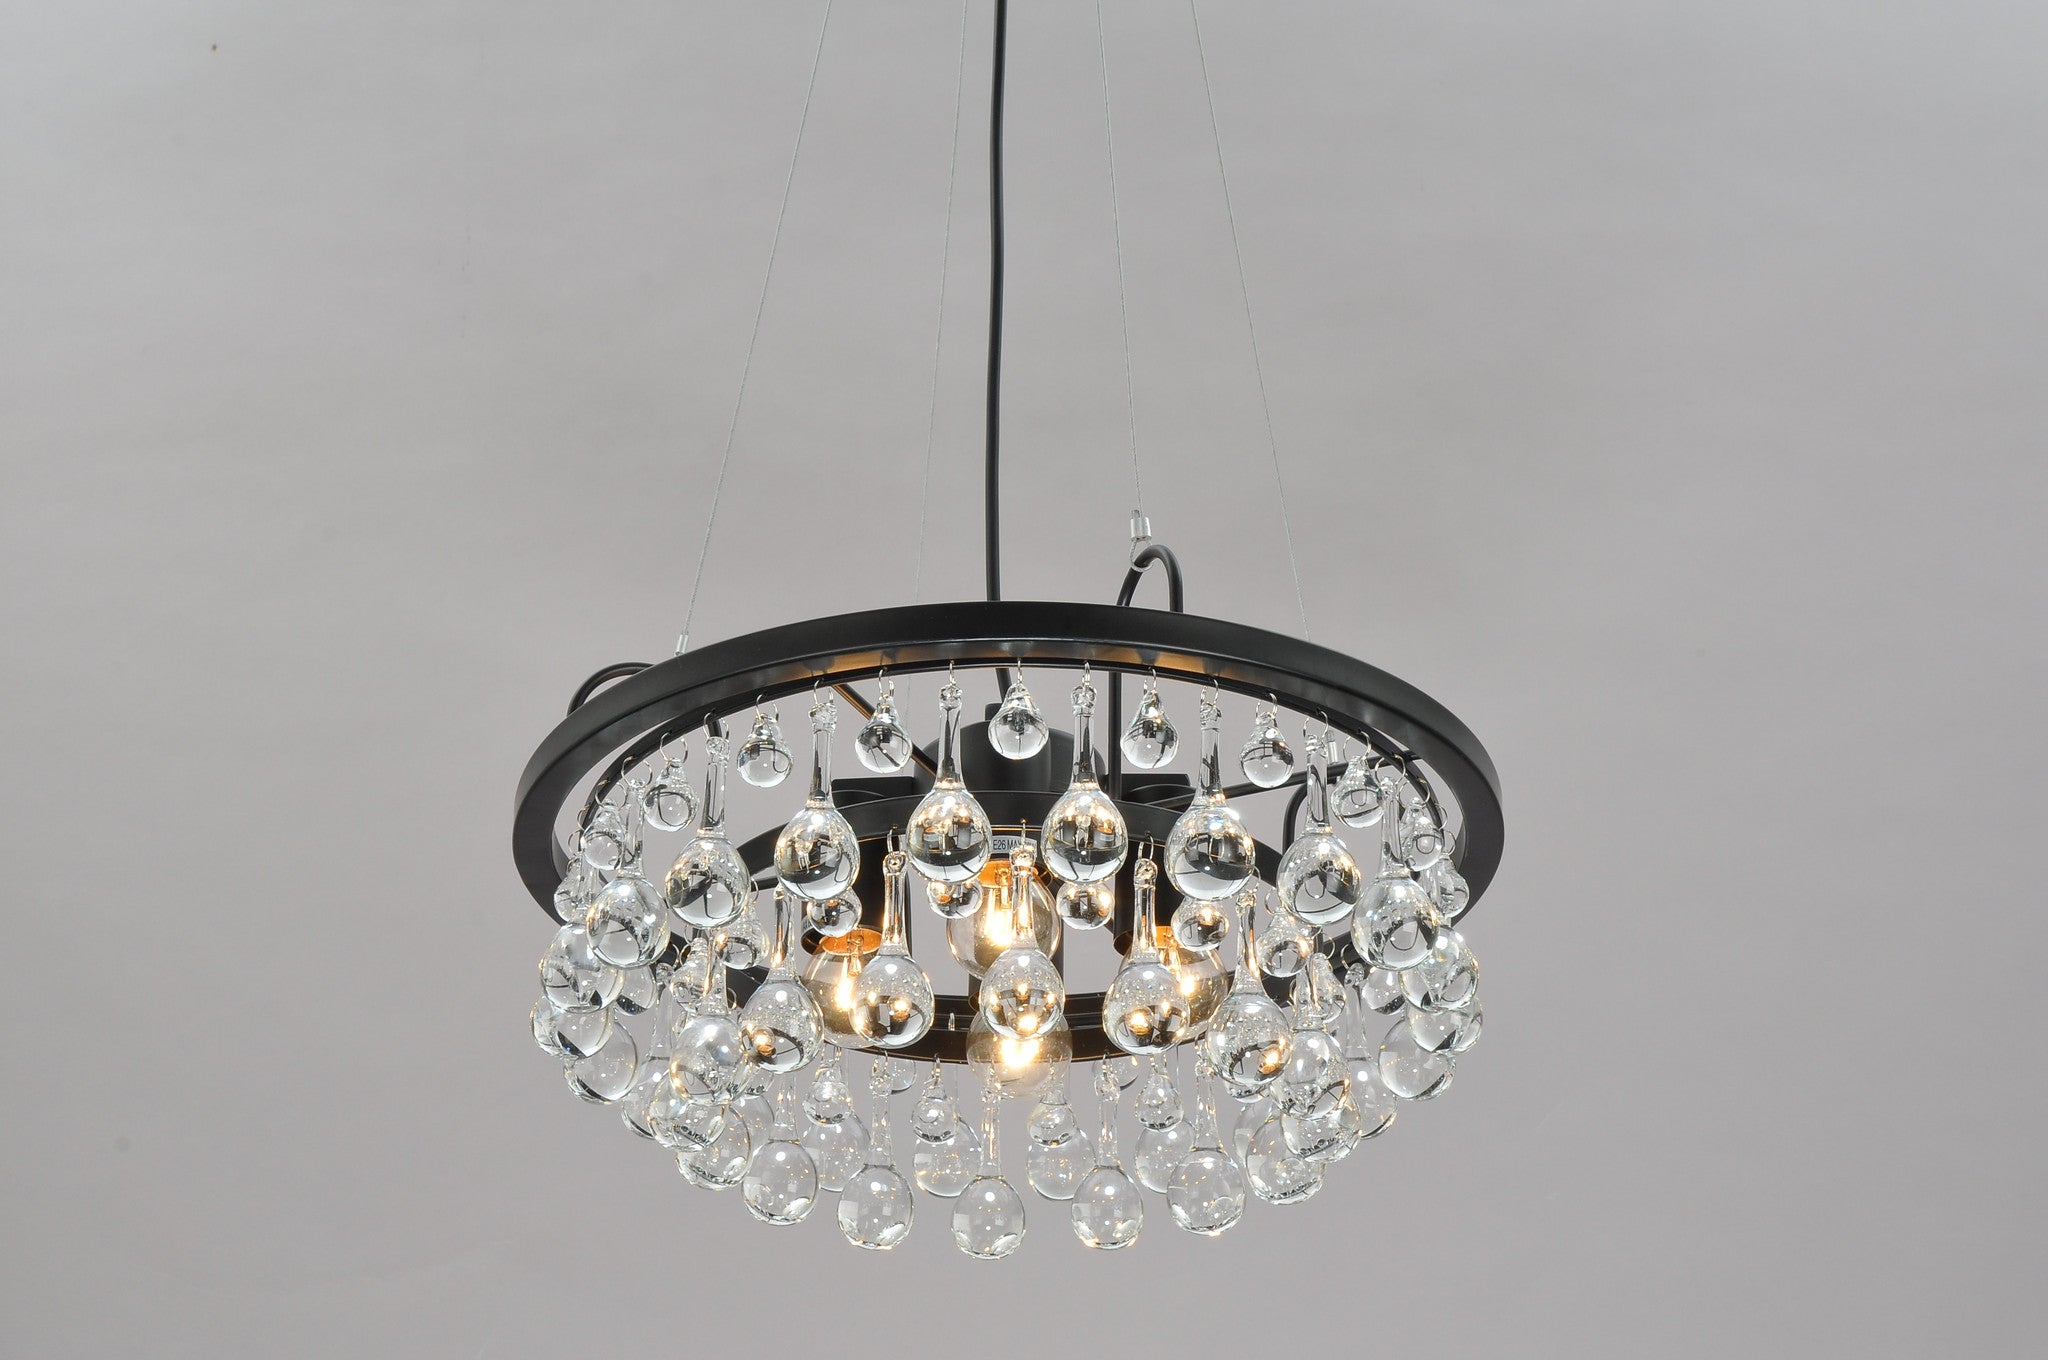 of crystal awesome chandelier manufacturers pendant light supply globe wholesale ball